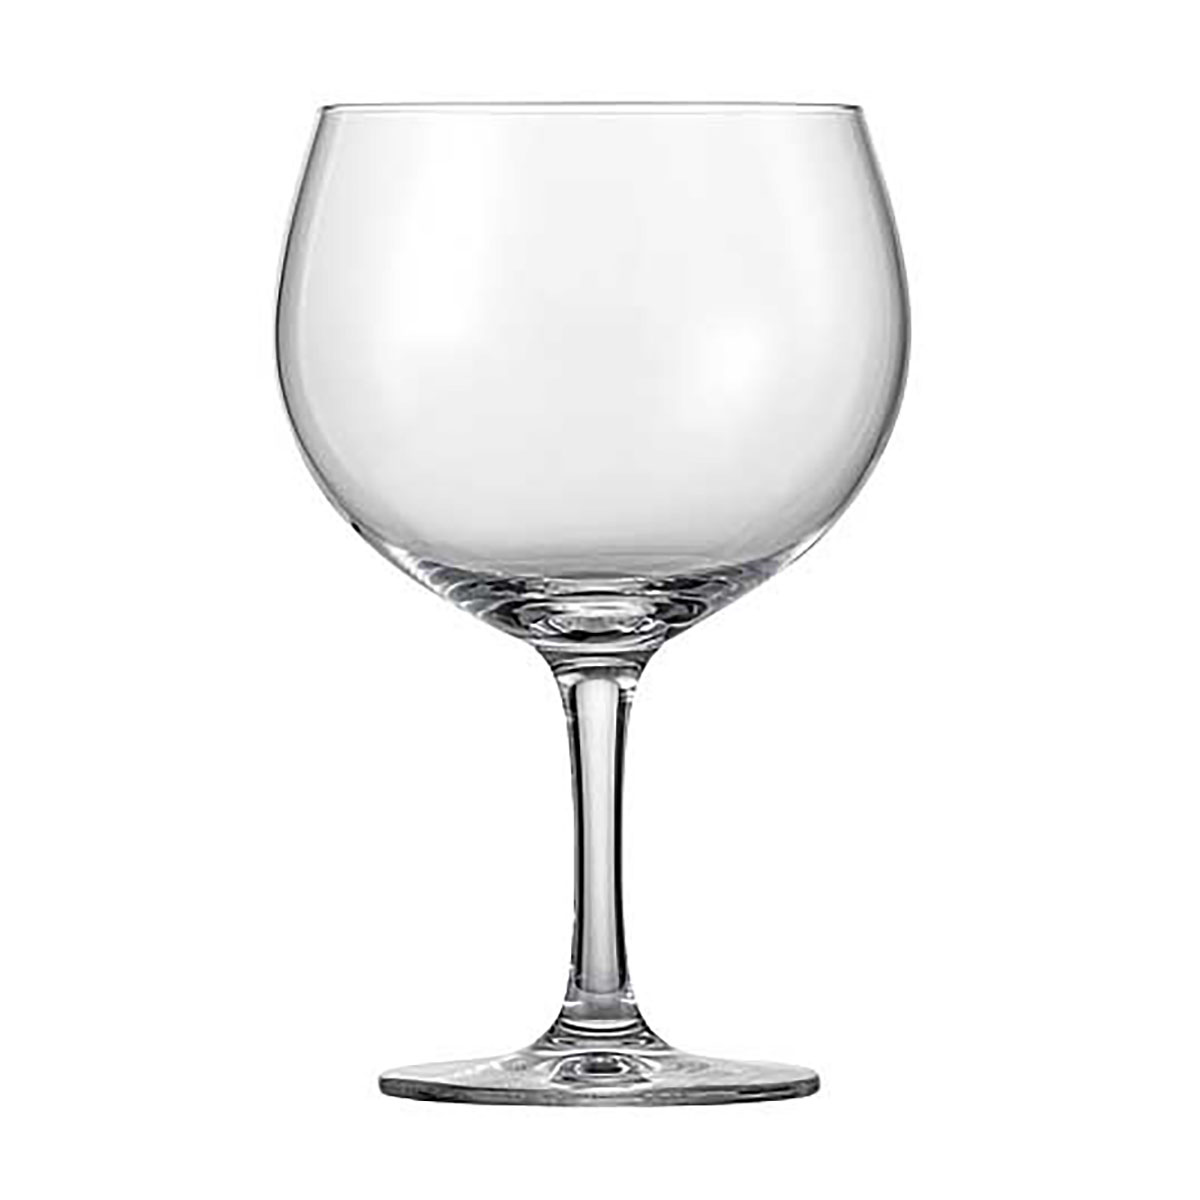 Schott Zwiesel Tritan Crystal, Bar Special Gin and Tonic, Sangria, Set of Six